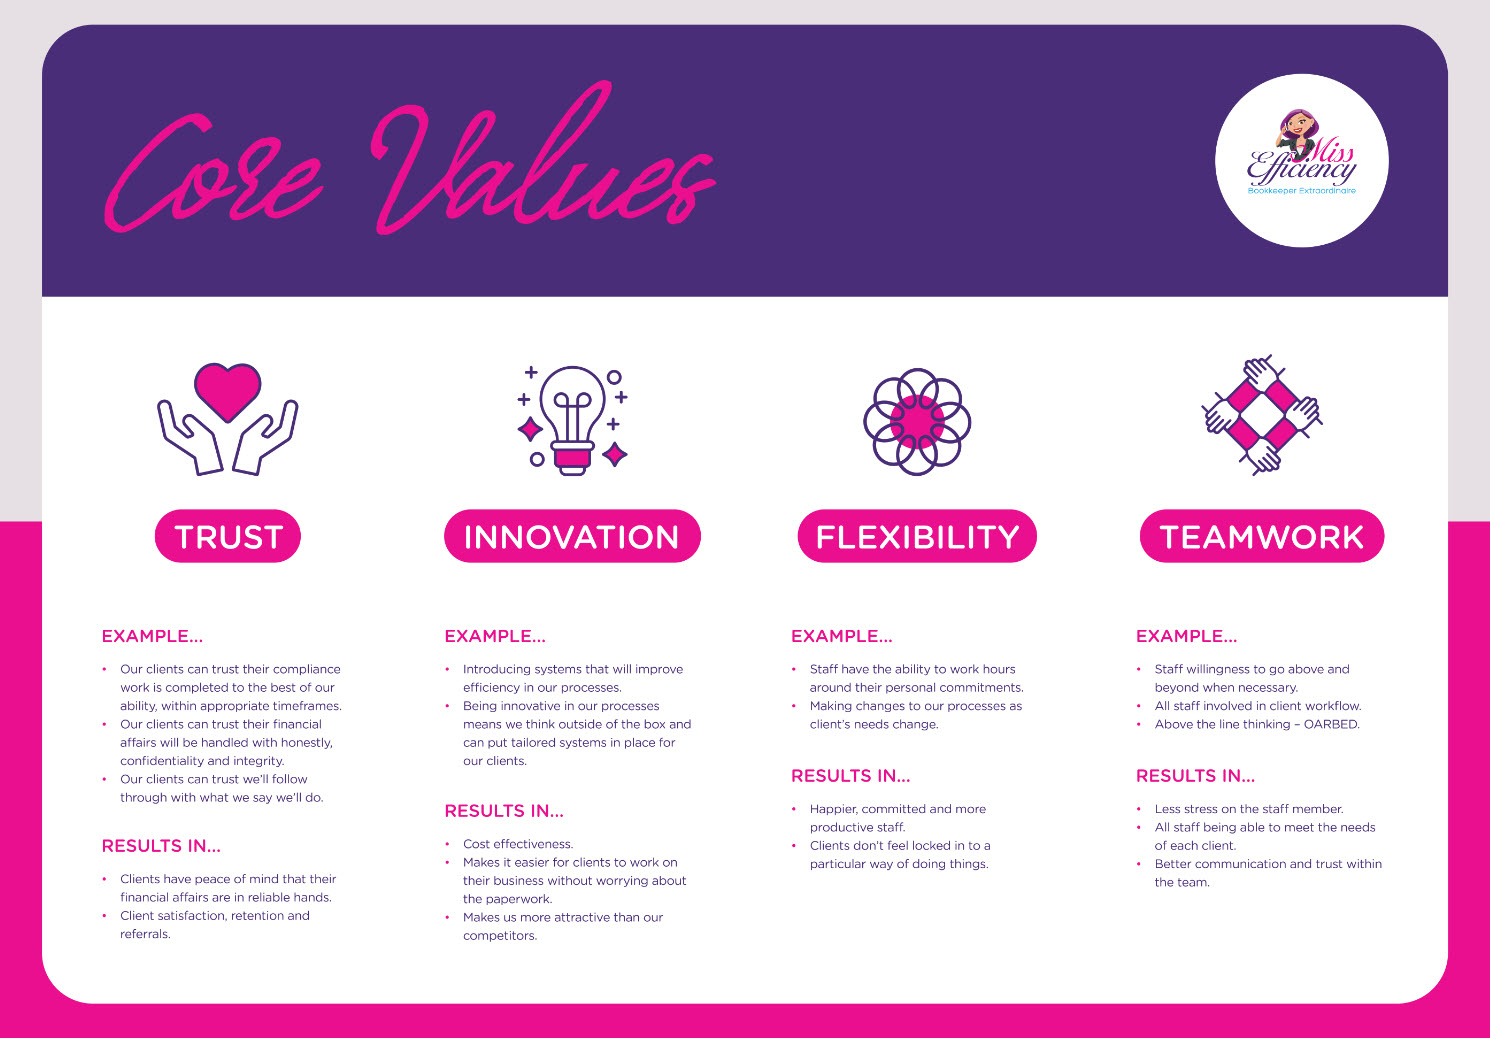 Core Values Development